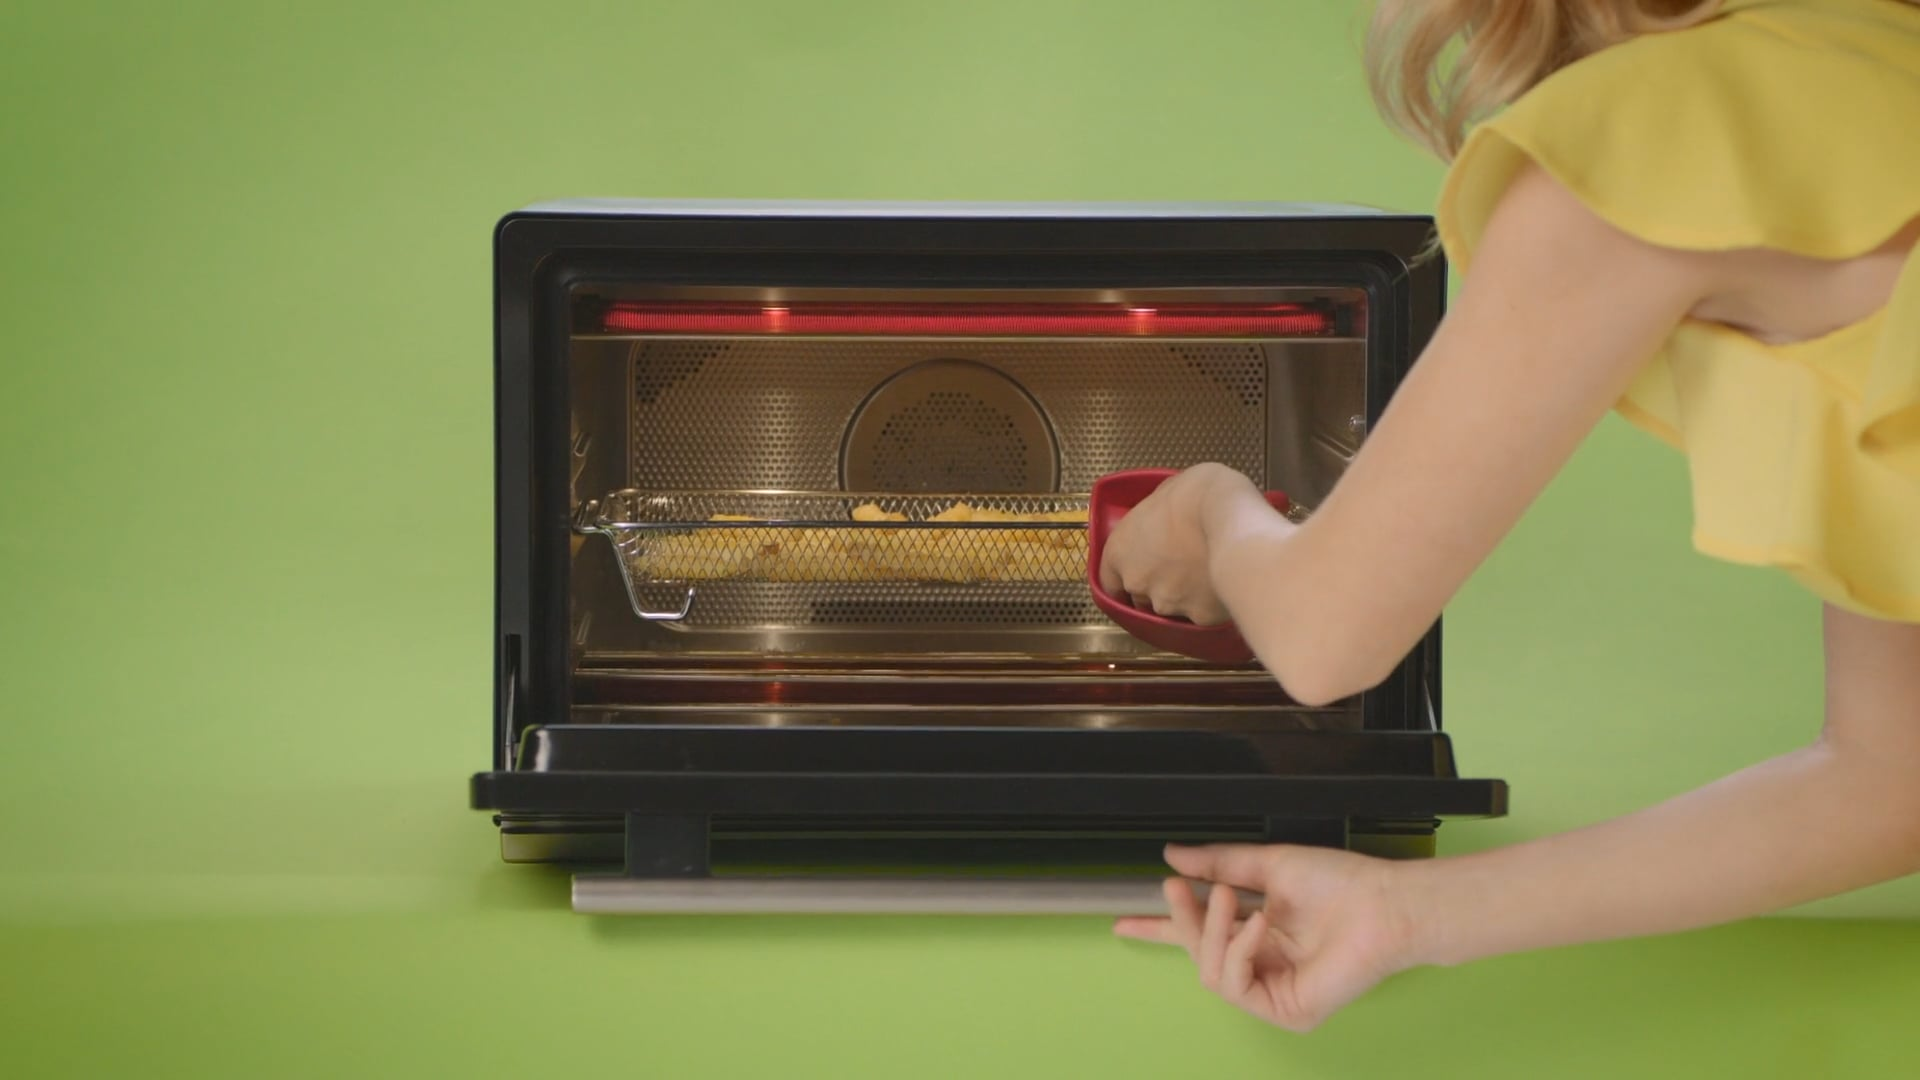 A lady reaches into a smart oven with a red oven mitt.